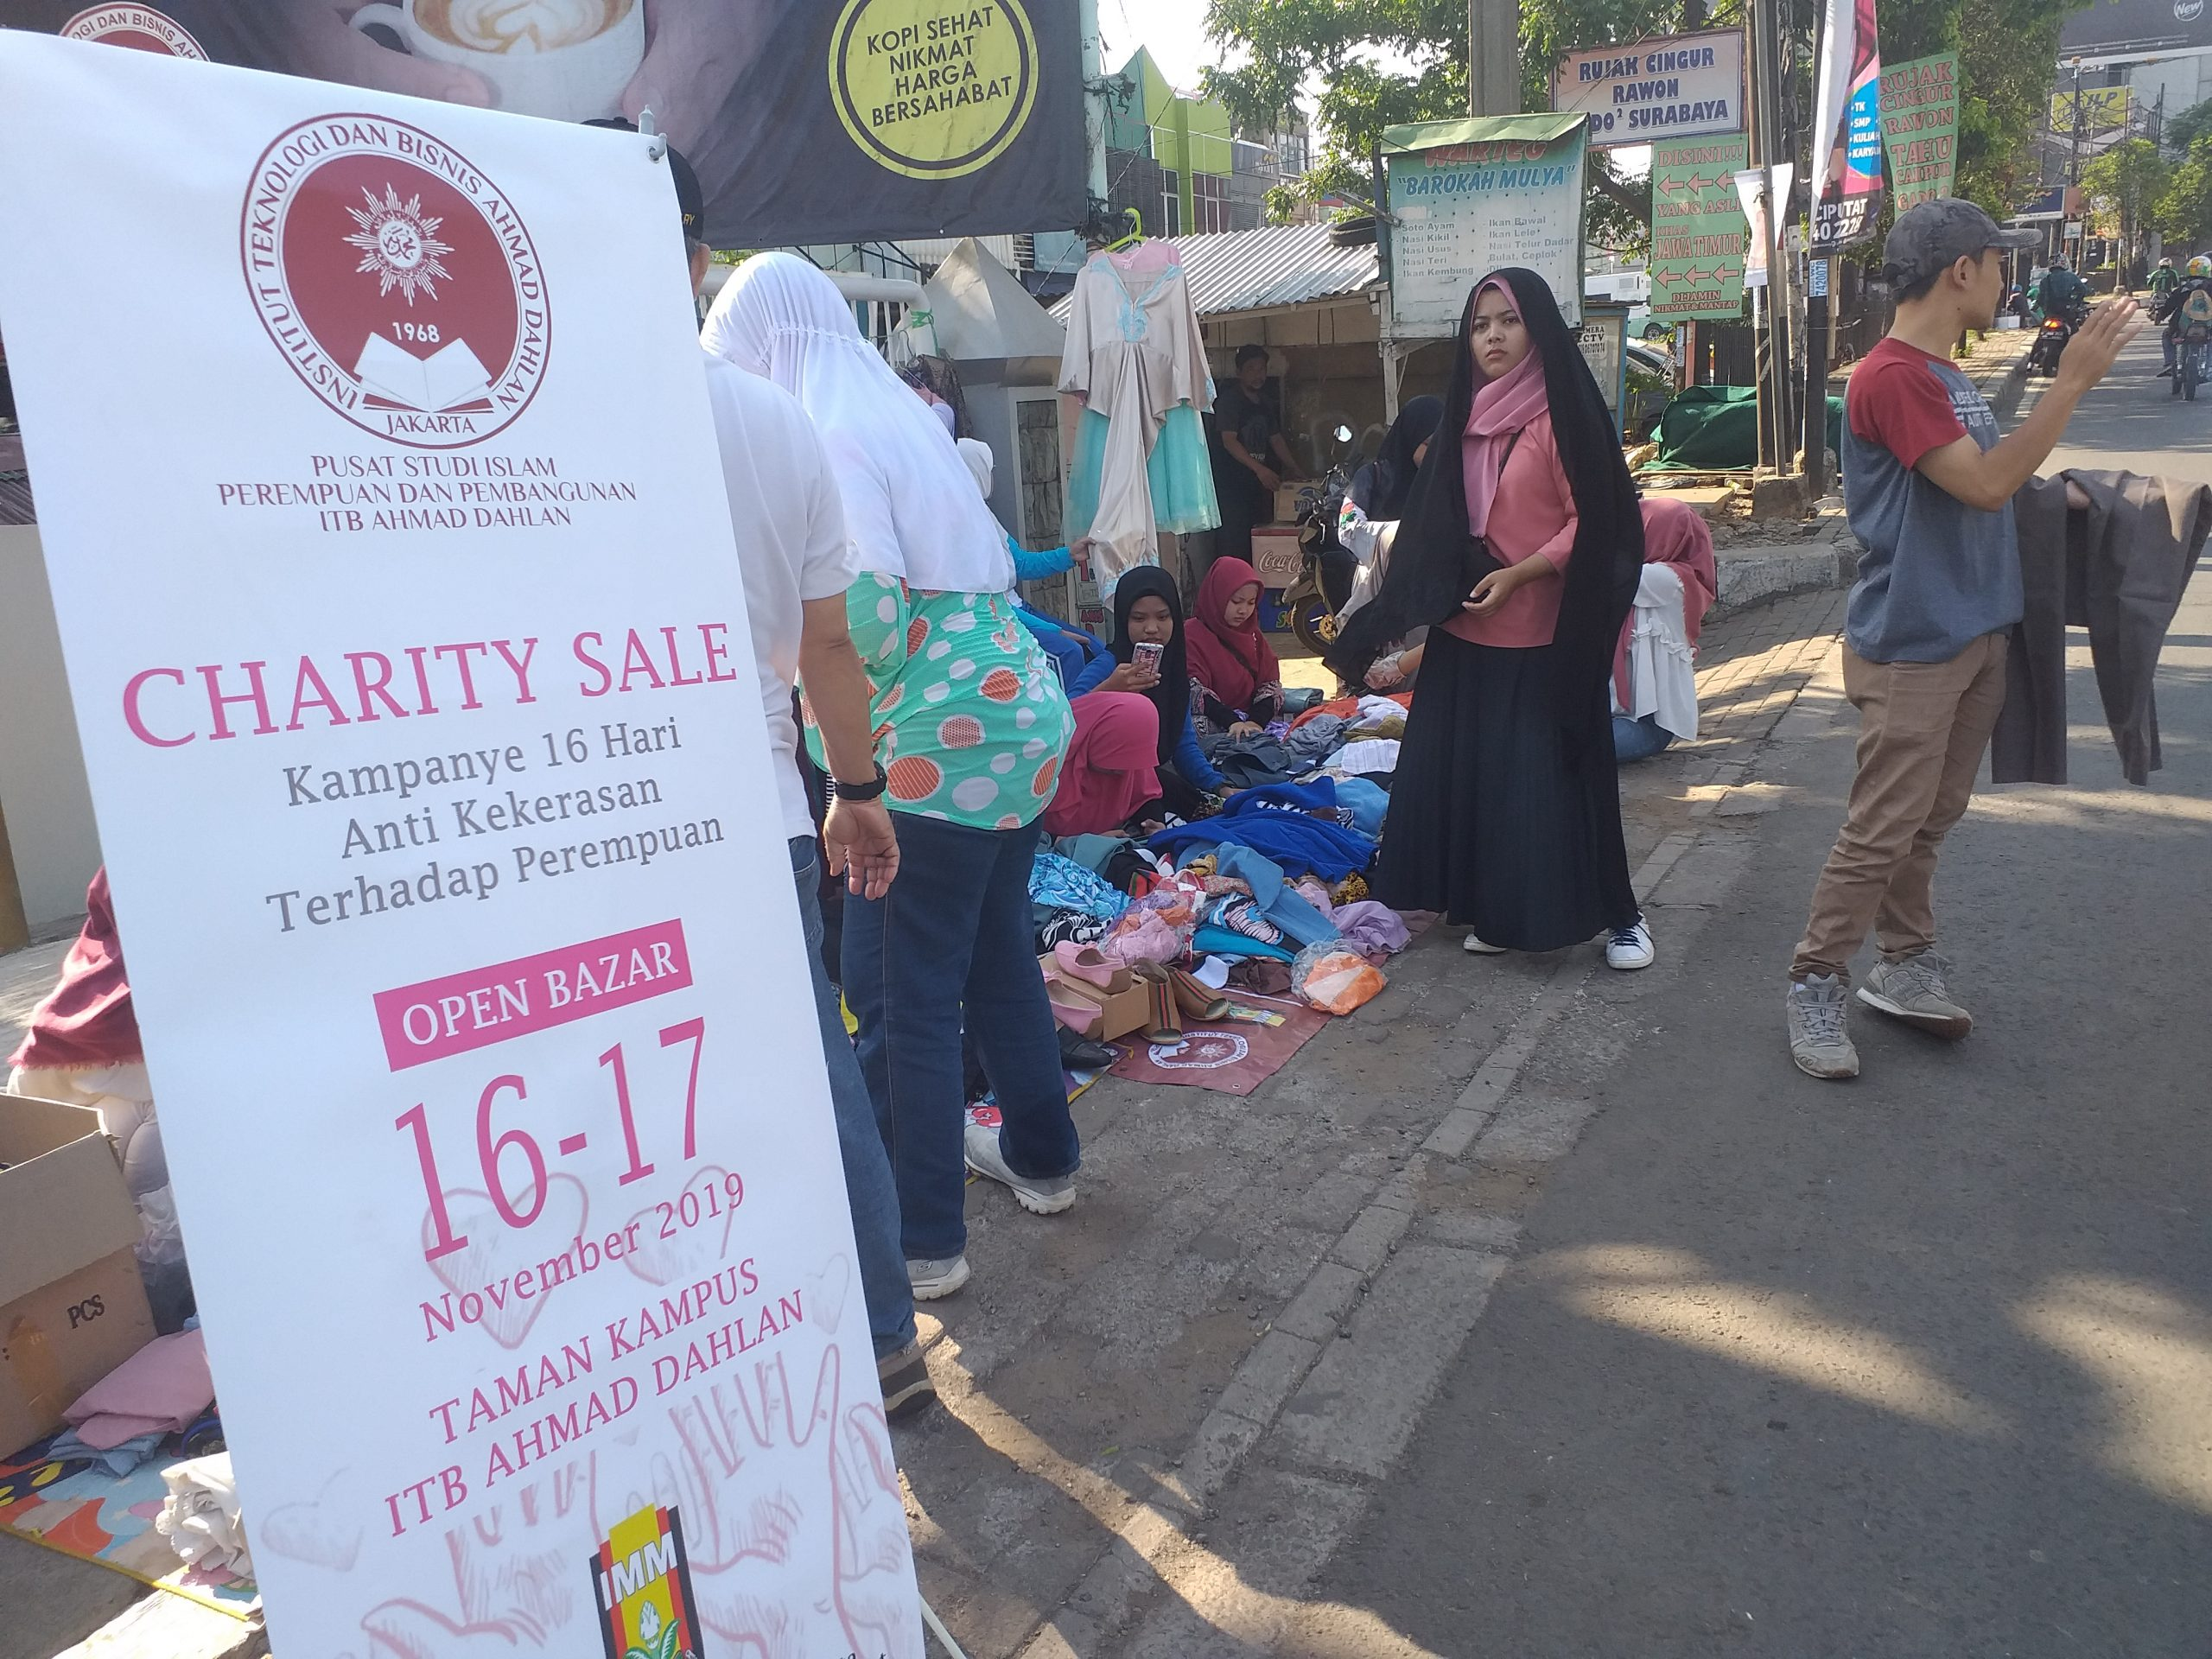 Charity Sale, K16HAKtP, 15-17 November 2019